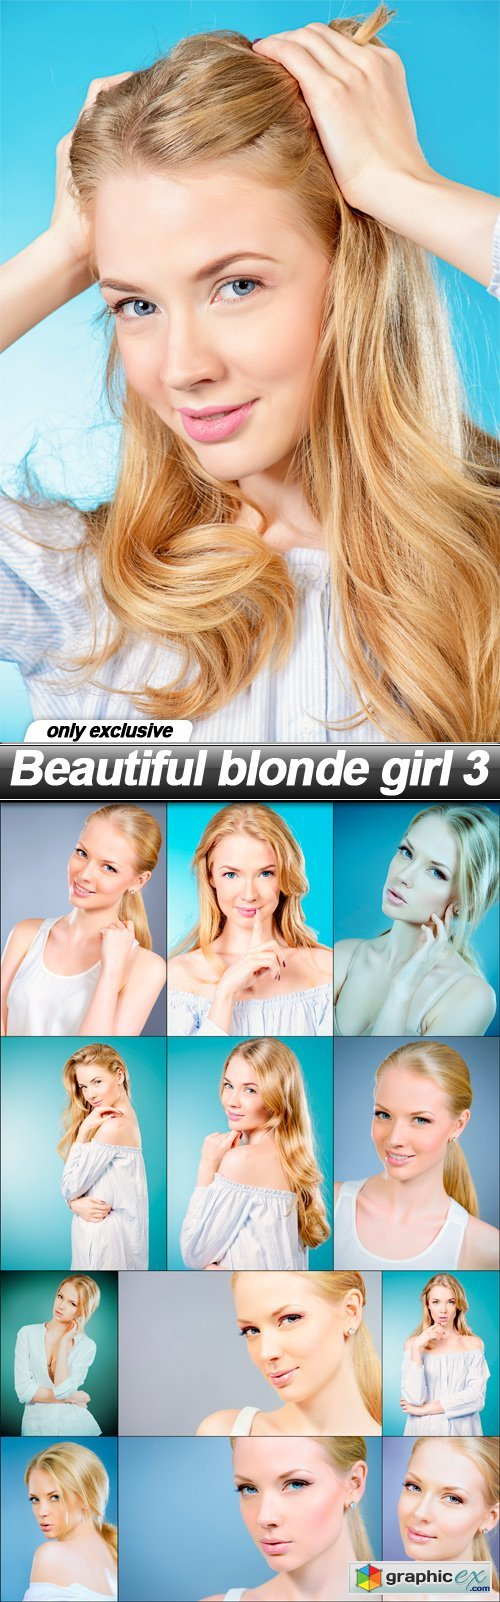 Beautiful blonde girl 3 - 13 UHQ JPEG